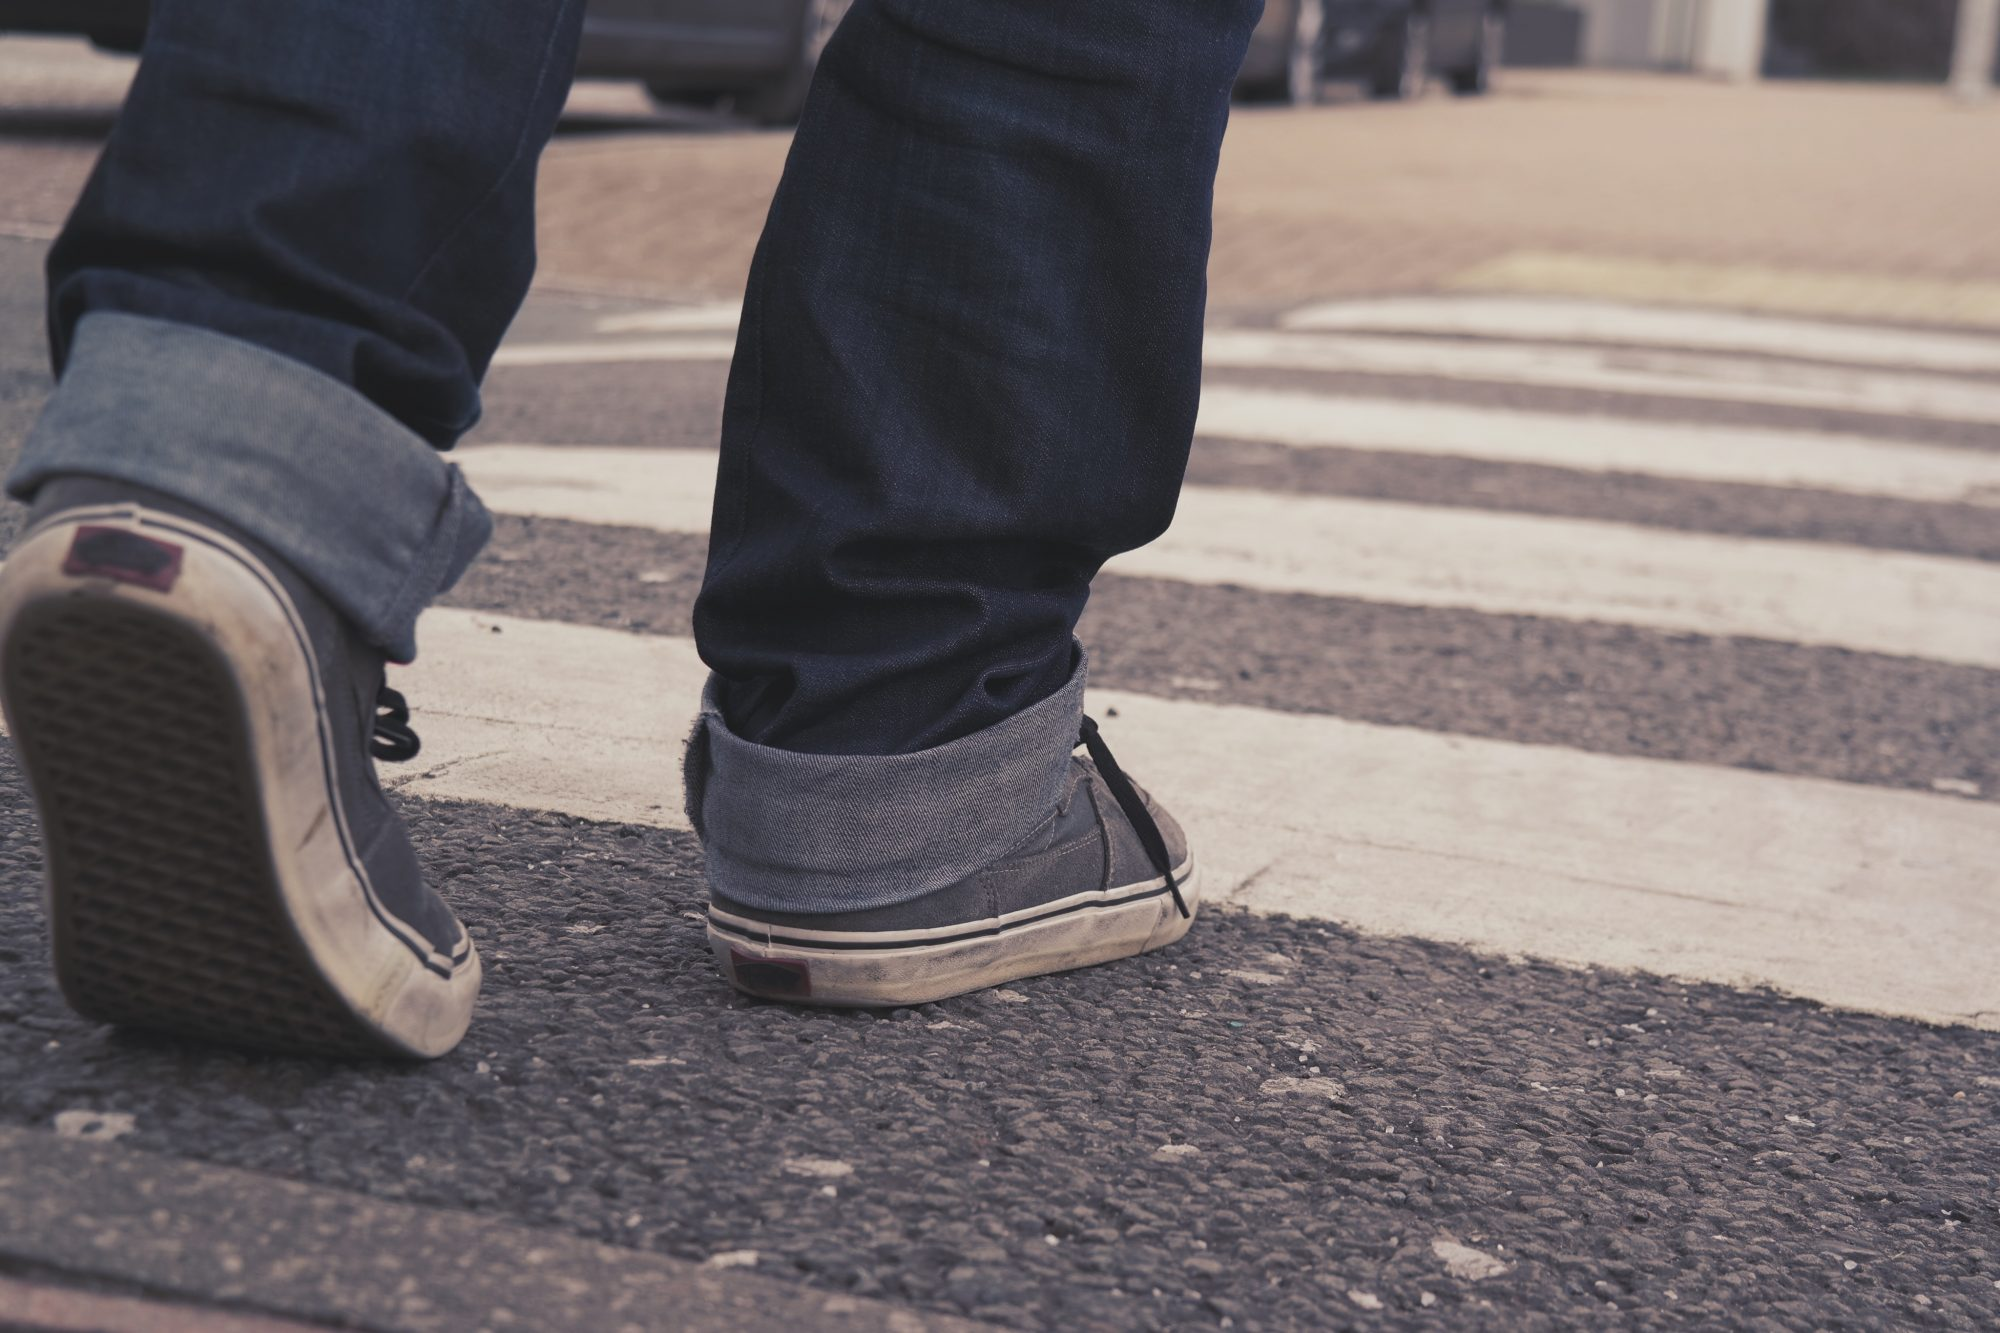 Man in Jeans and Sneakers Walking Across Crosswalk